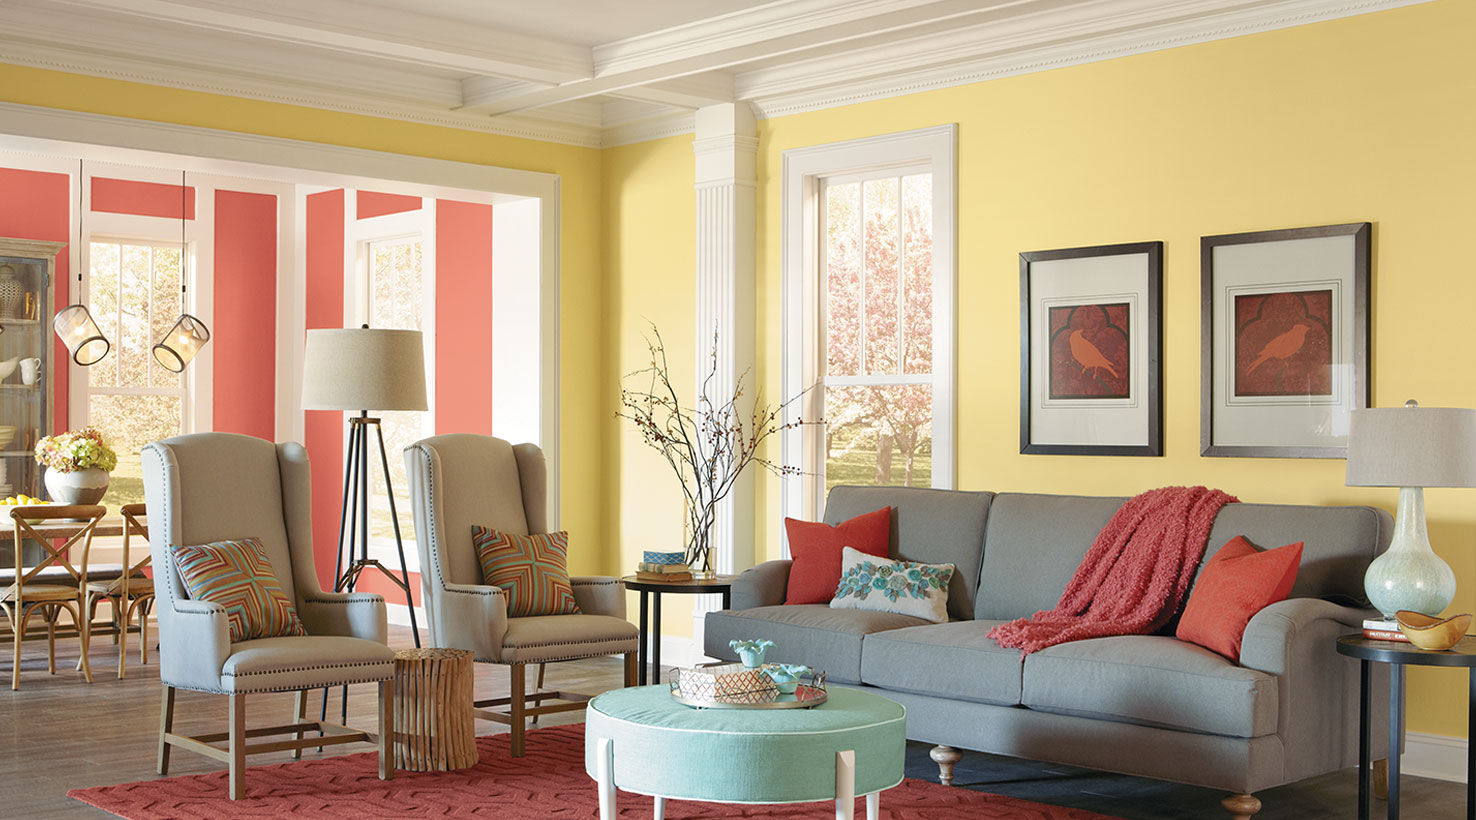 10+ Living Room Paint Color Ideas for the Heart of the Home